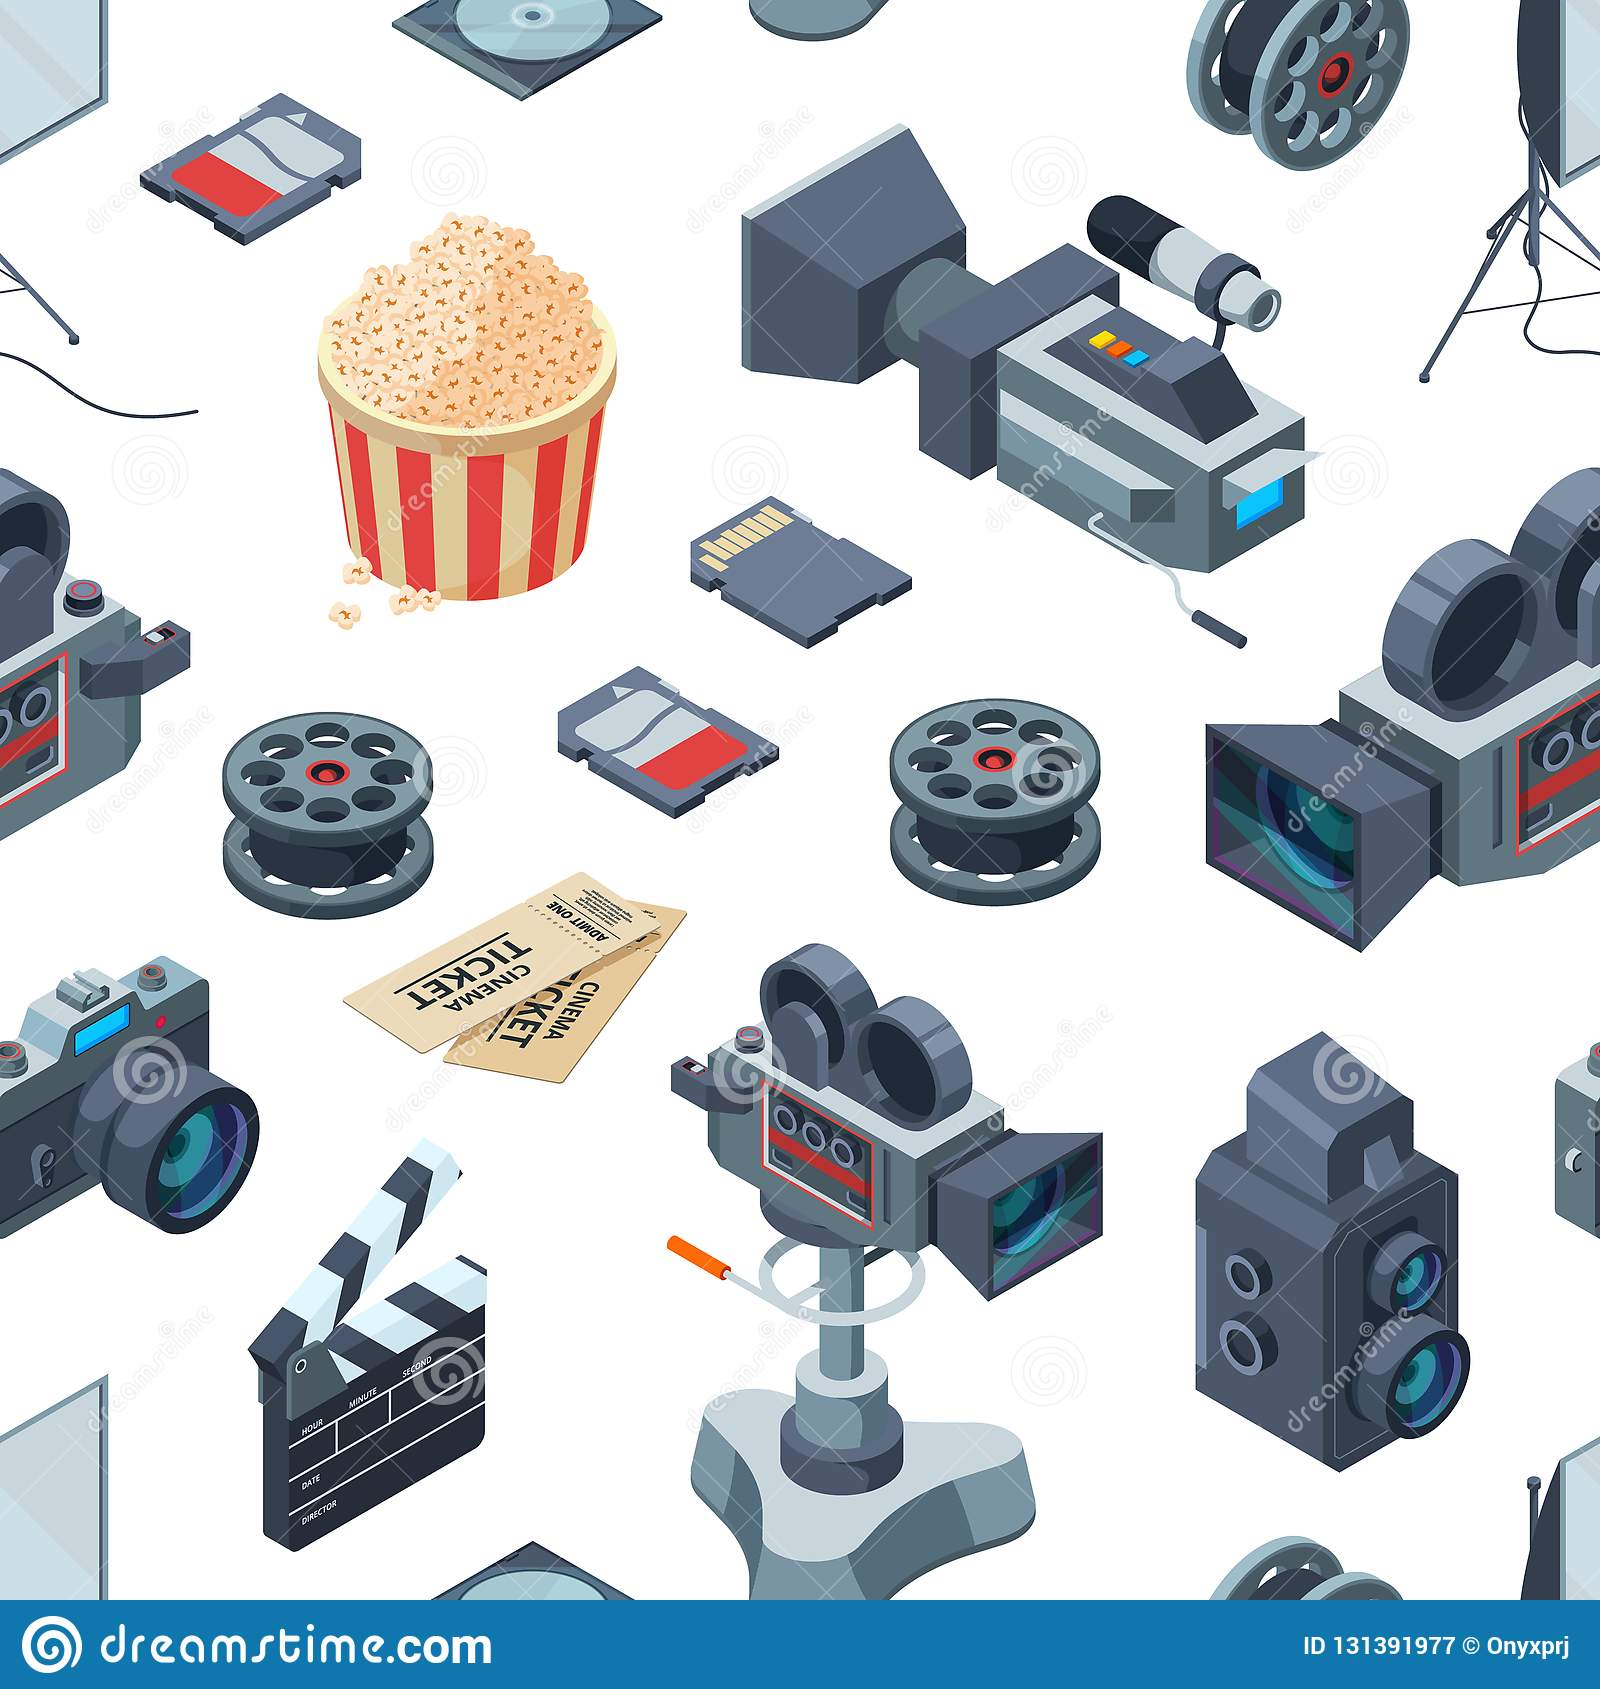 Vector cinematograph isometric elements pattern or background illustration